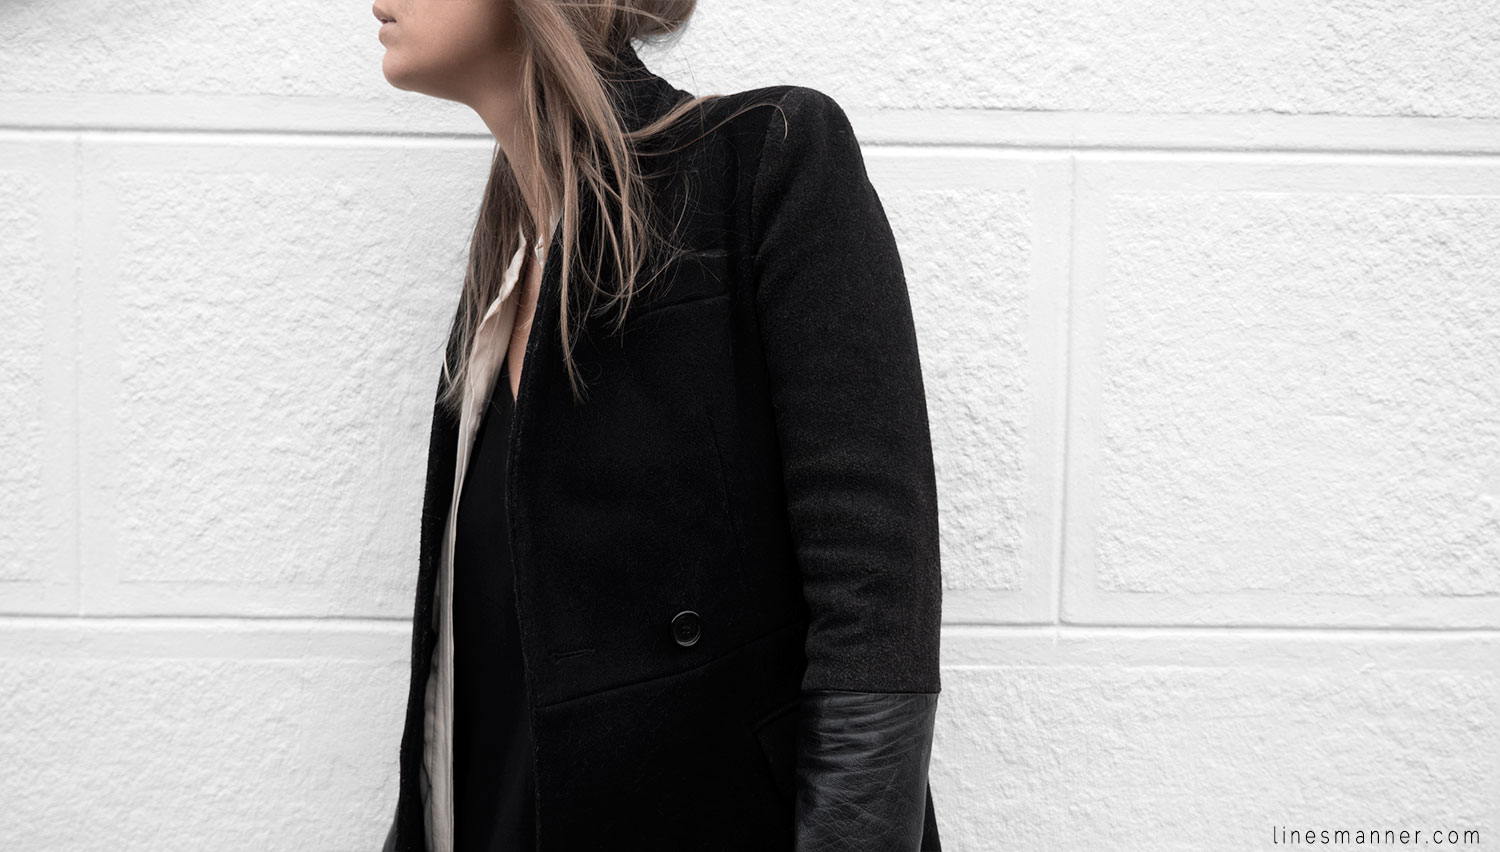 Lines-Manner-Remind-2015-Minimal-Essential-Outfit-Inspiration-Blog-Timeless-Year-Seasons-Details-Travel-Fashion-Versatile-Clean-Sleek-Quality-46